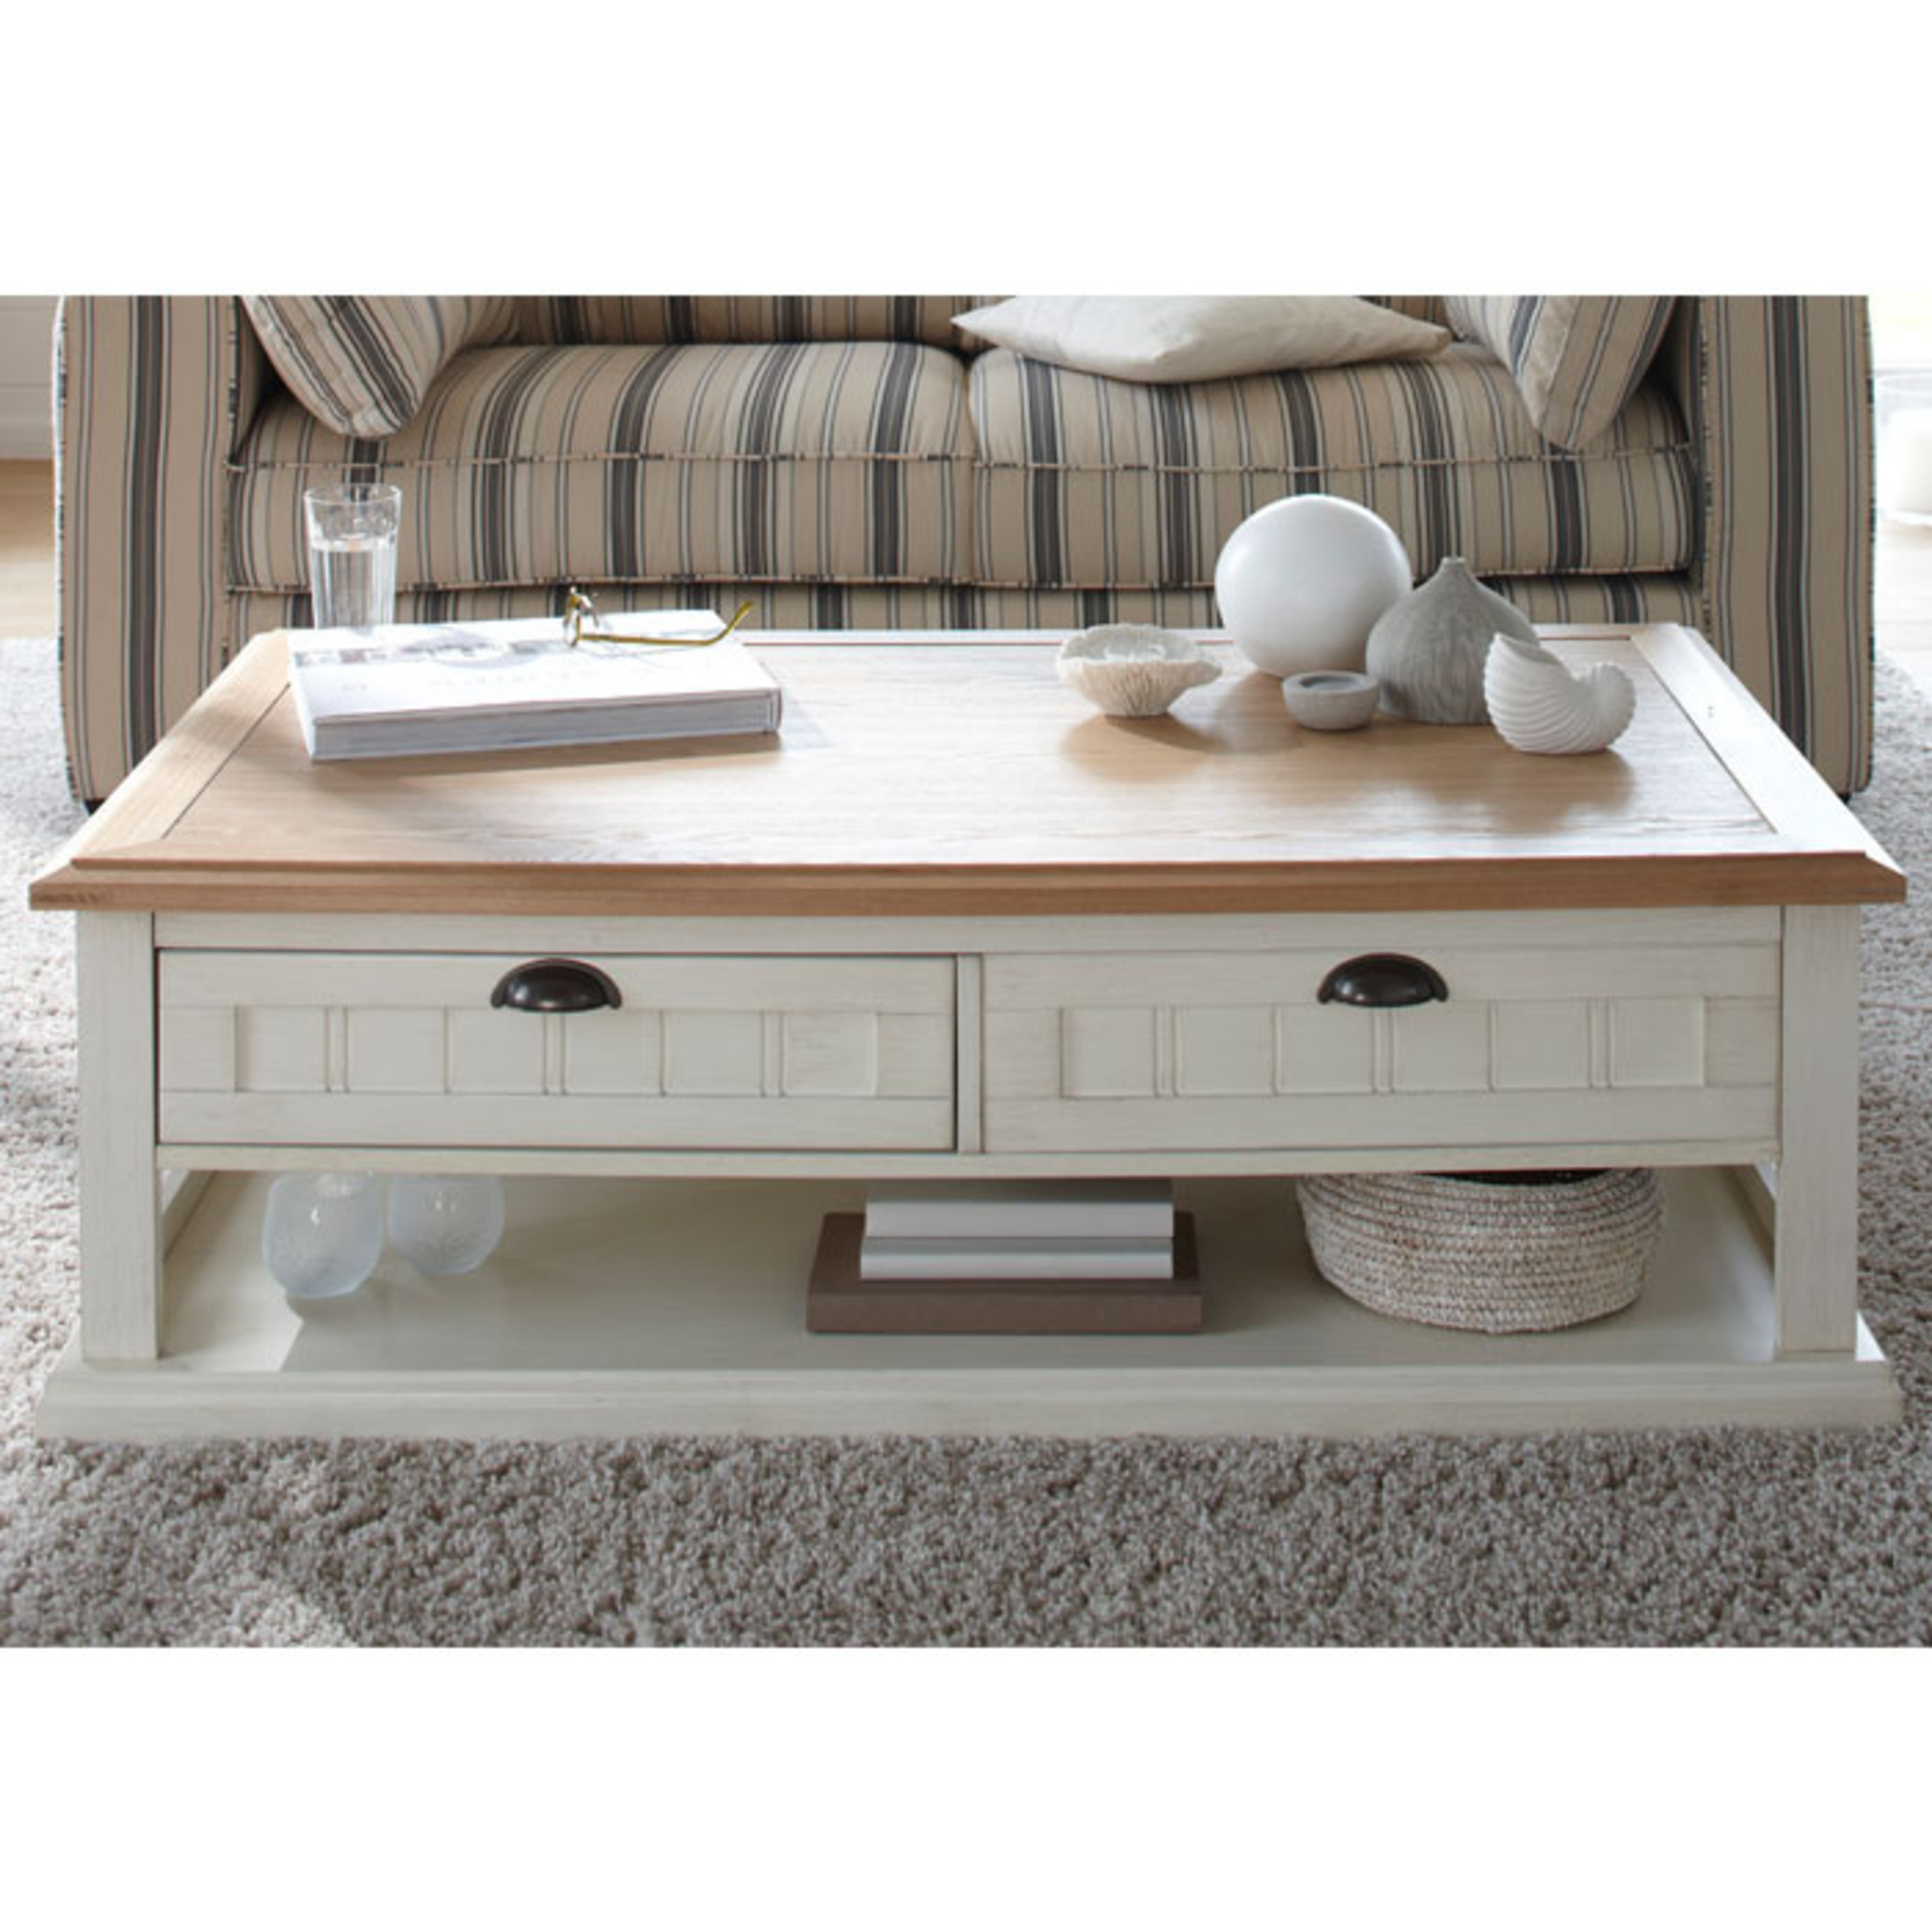 Table basse rectangulaire 2 tiroirs berling blanc patin for Table basse blanche en bois